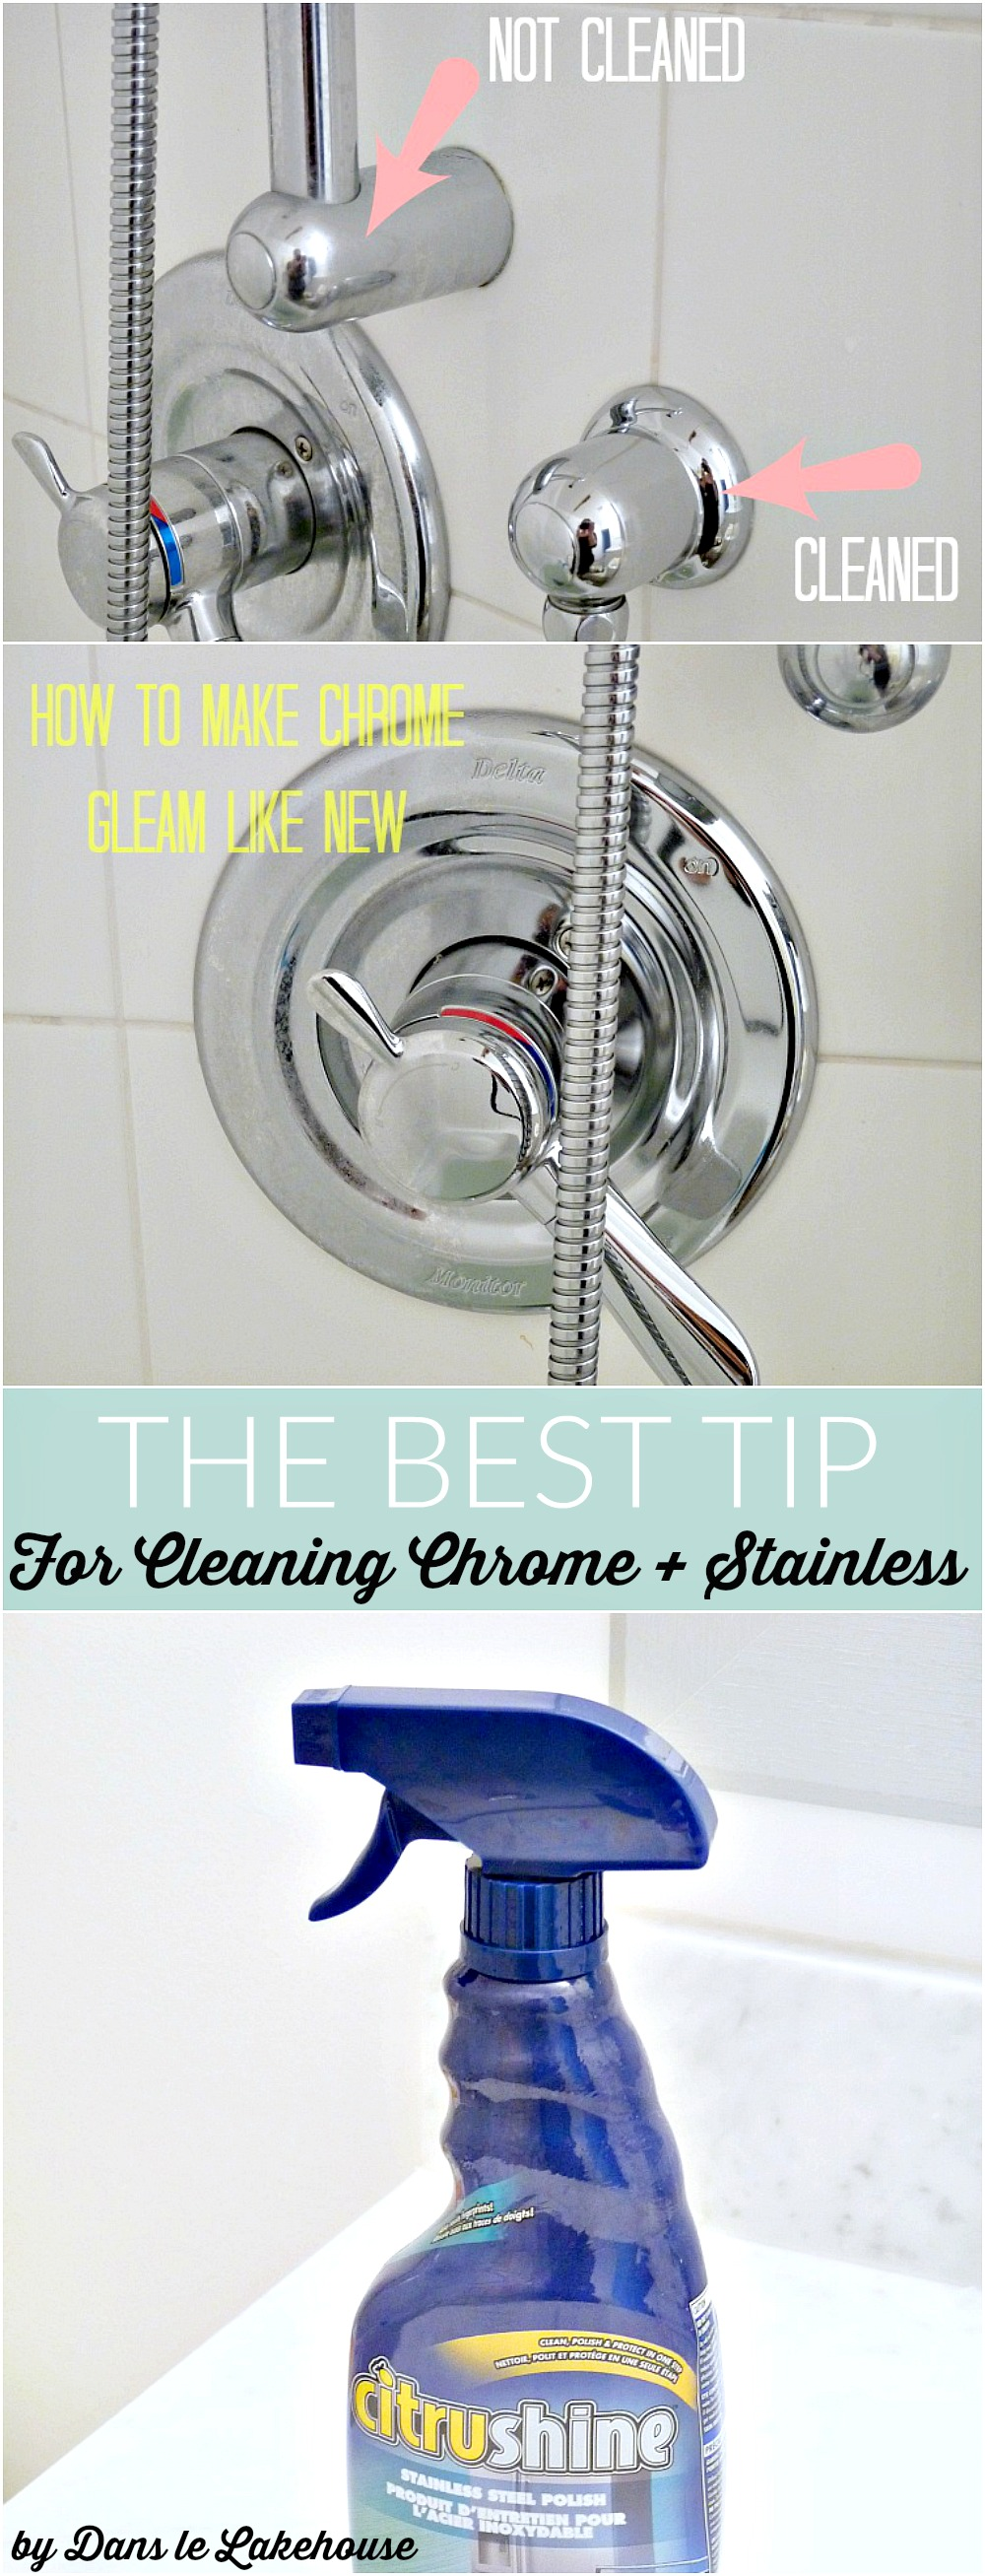 The easy way to clean chrome and stainless